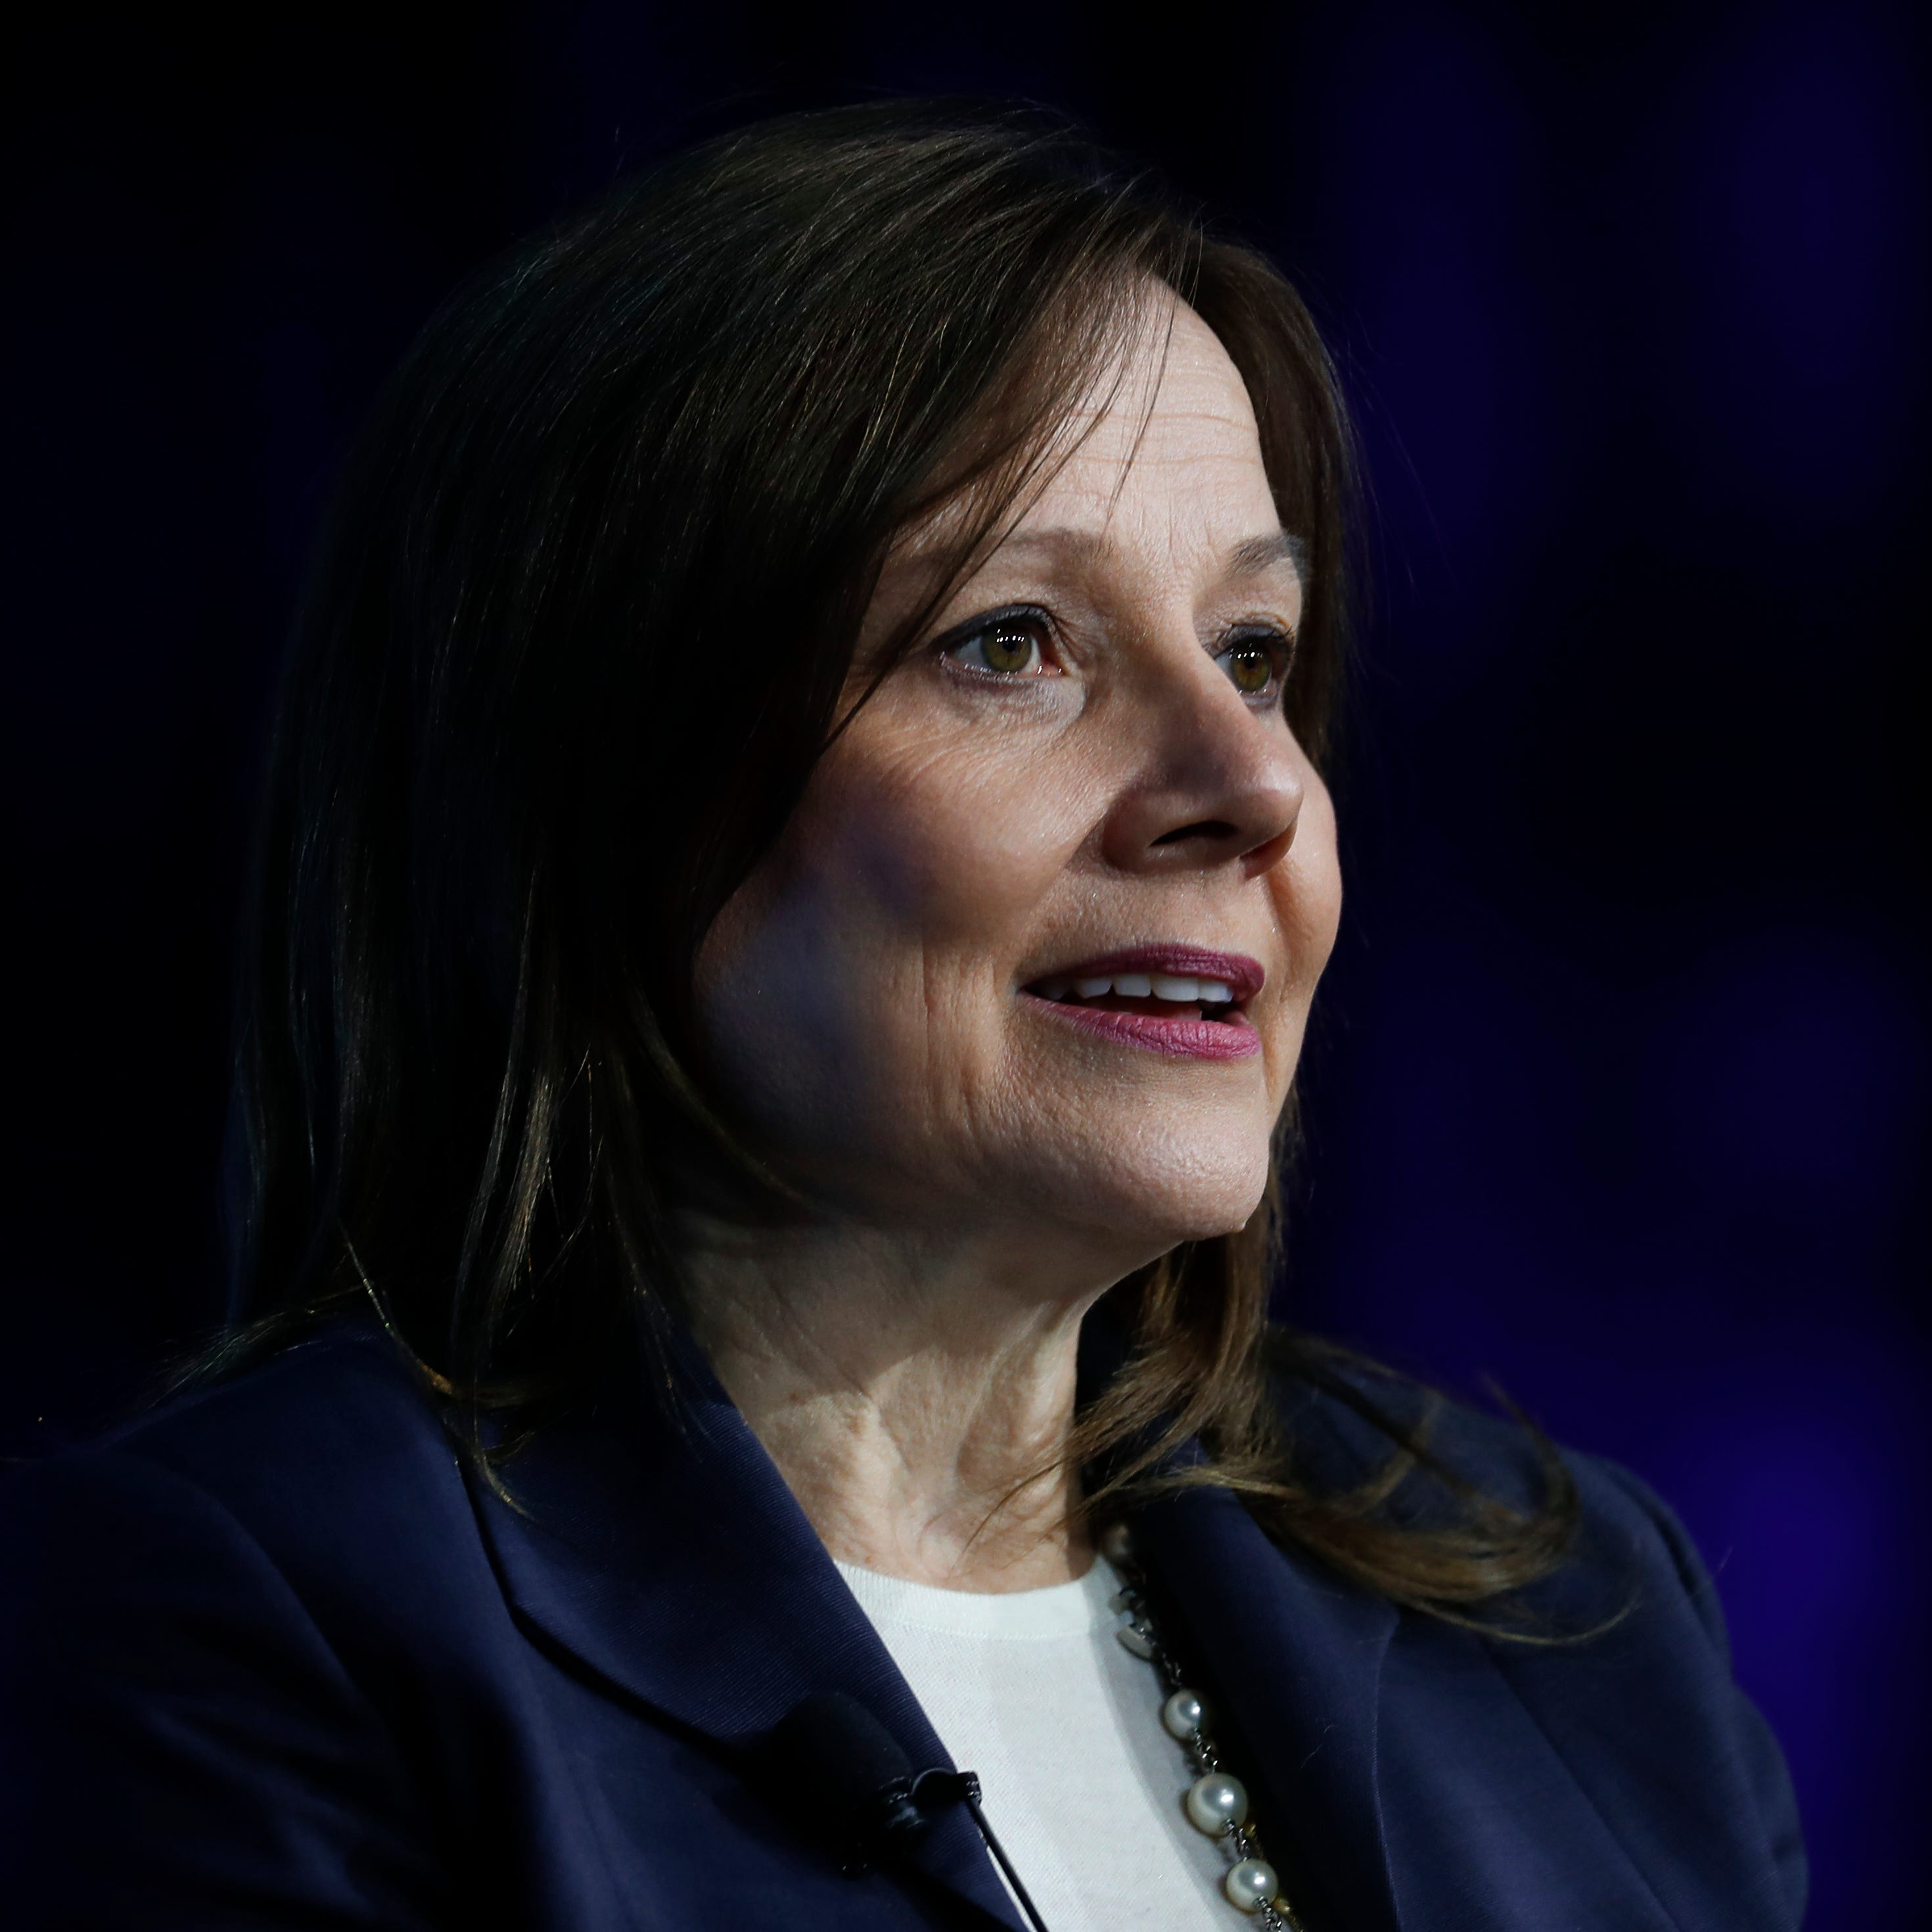 Mary Barra, Chairman and Chief Executive Officer, General Motors Company, speaks at the Automotive News World Congress in Detroit, Wednesday, Jan. 16, 2019. (AP Photo/Paul Sancya)